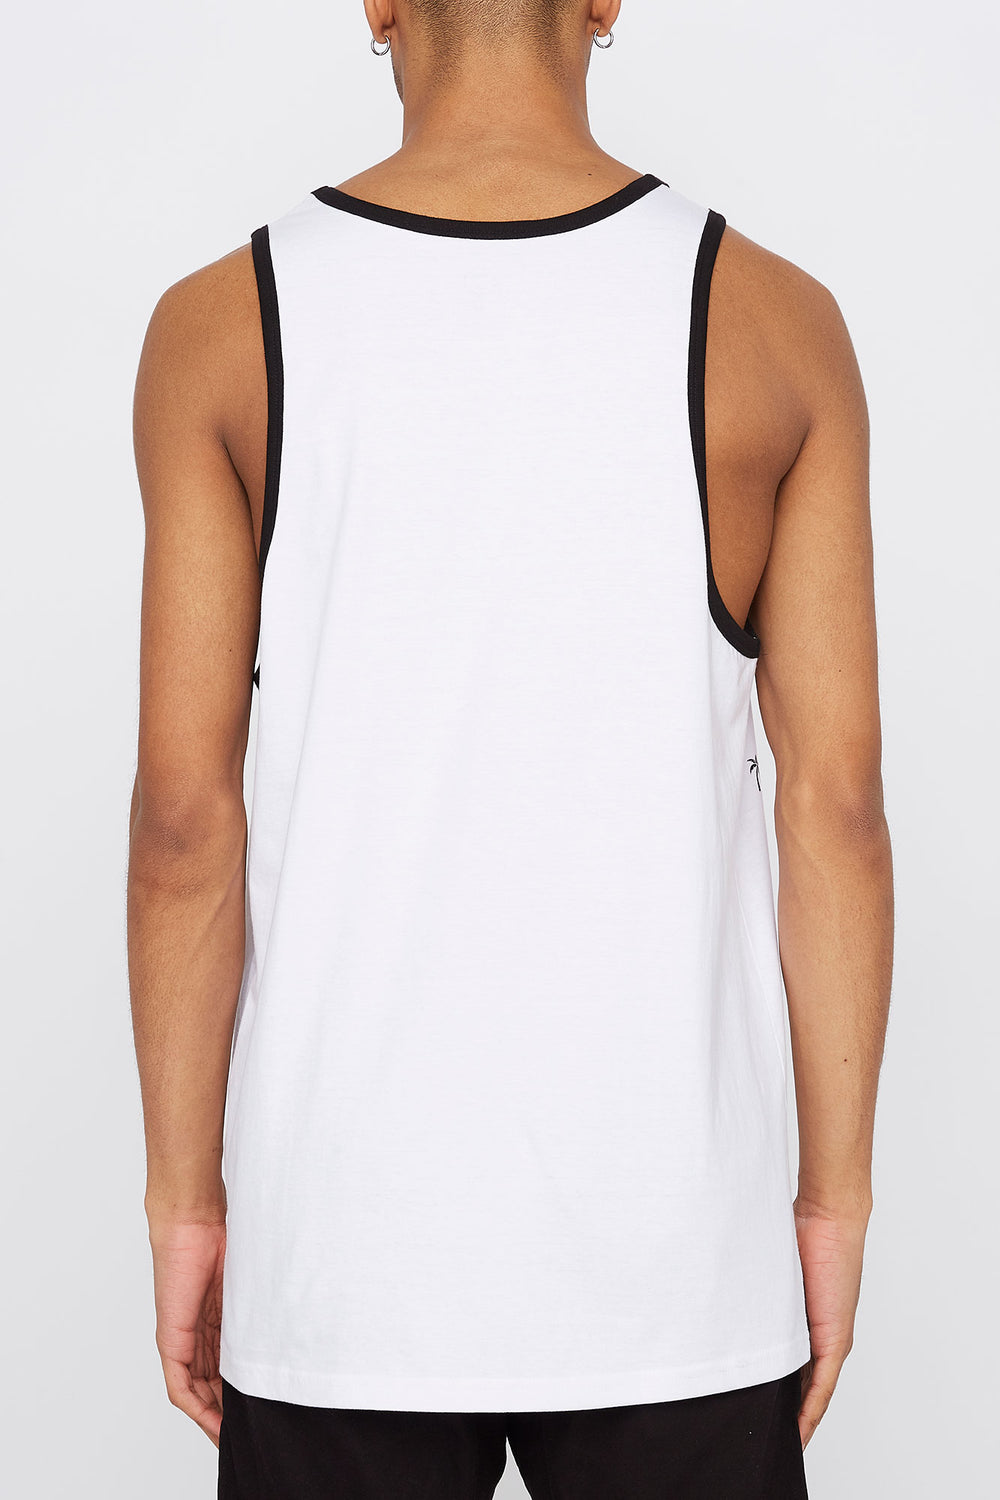 West49 Mens Pocket Tank Top White